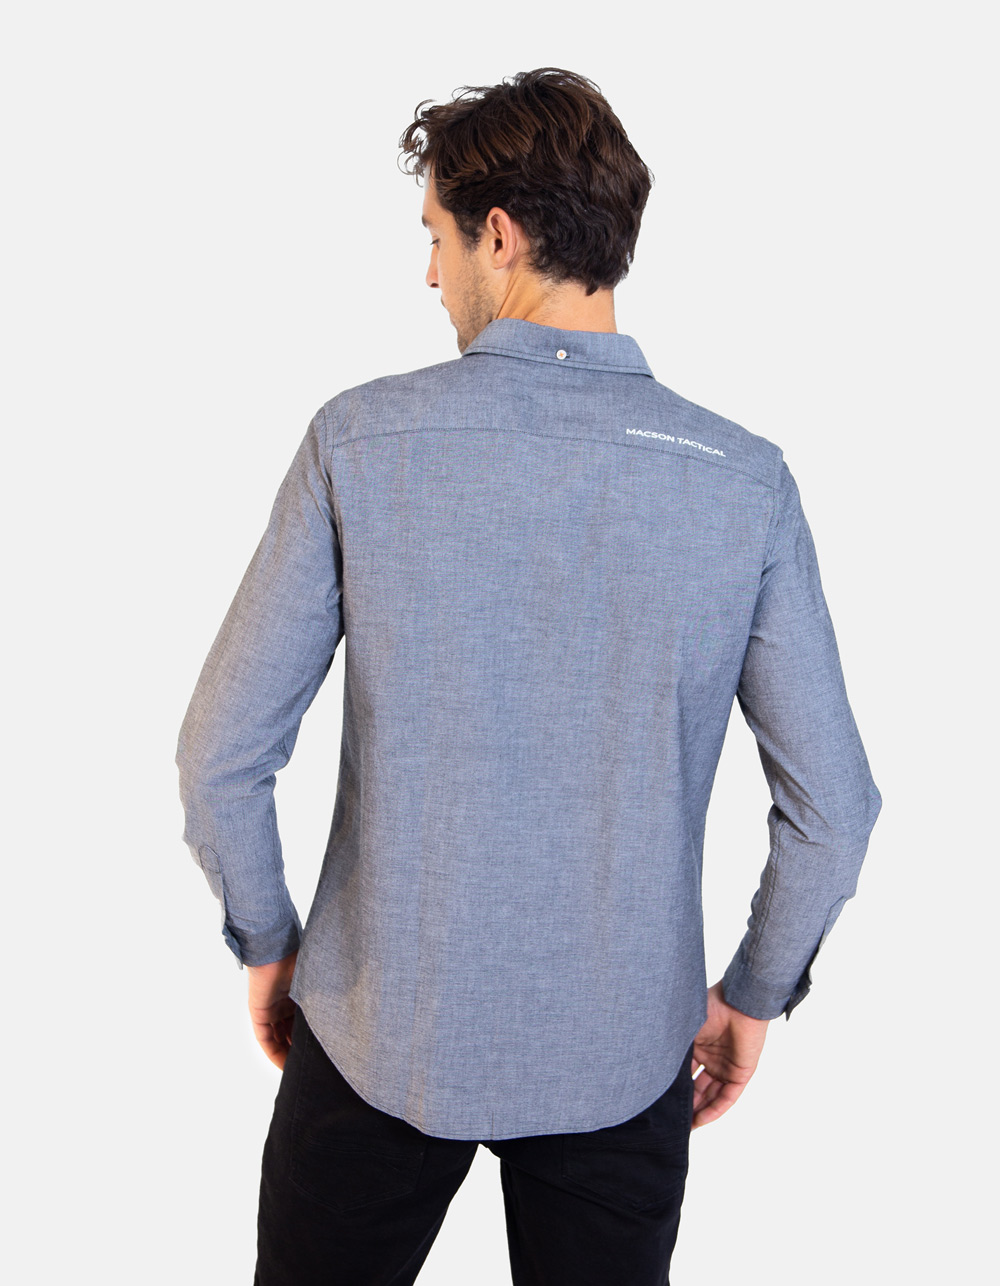 Grey Oxford long sleeve plain shirt - Backside